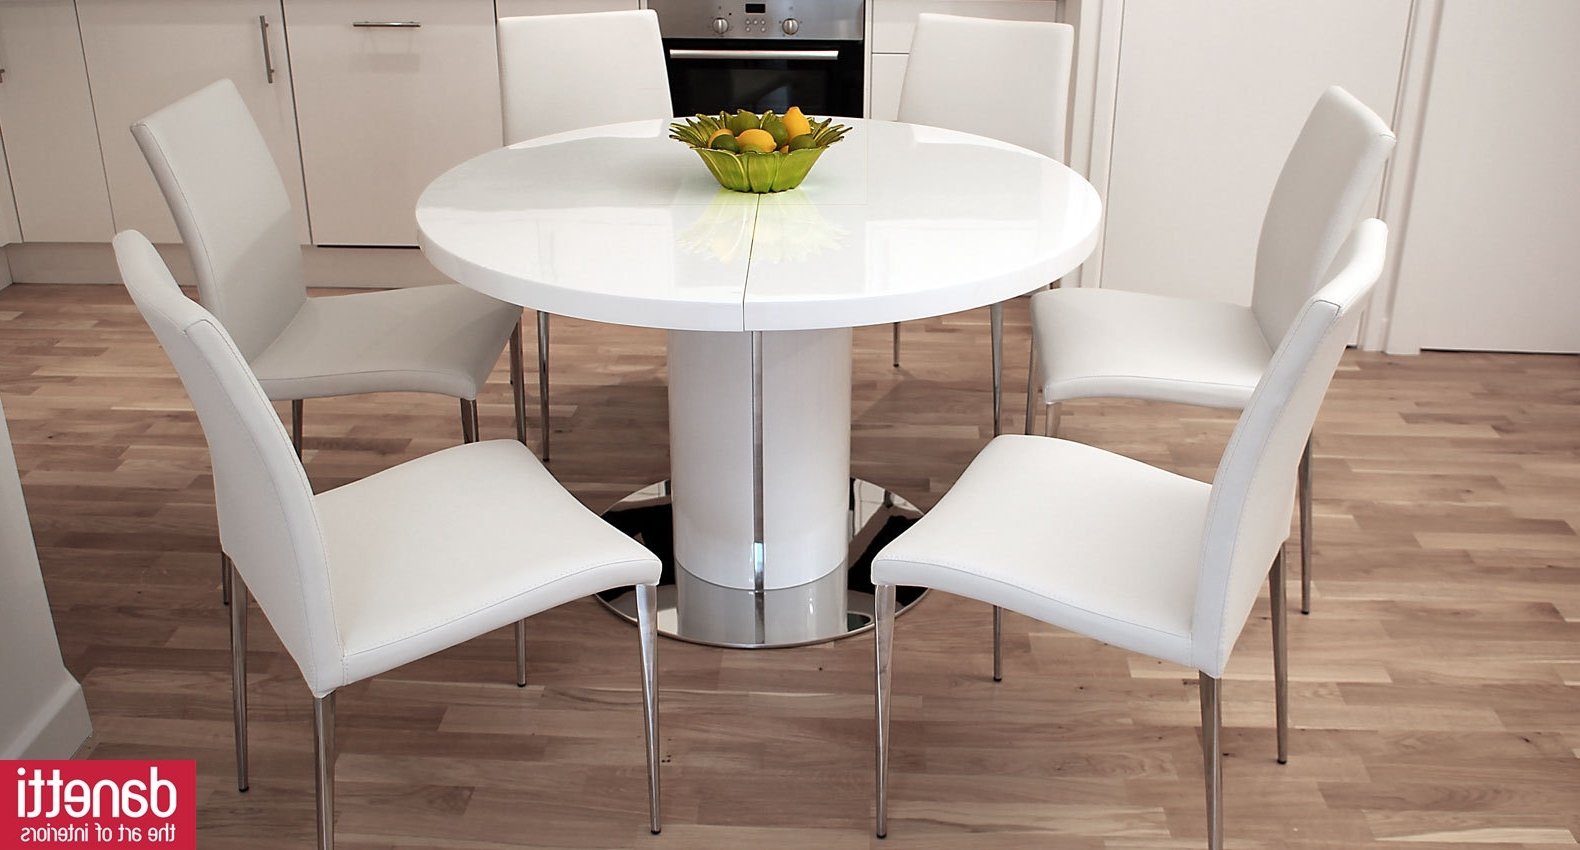 White Circle Dining Tables Regarding Well Known White Round Dining Table And Chairs White Circle Dining Table And Chairs (View 23 of 25)